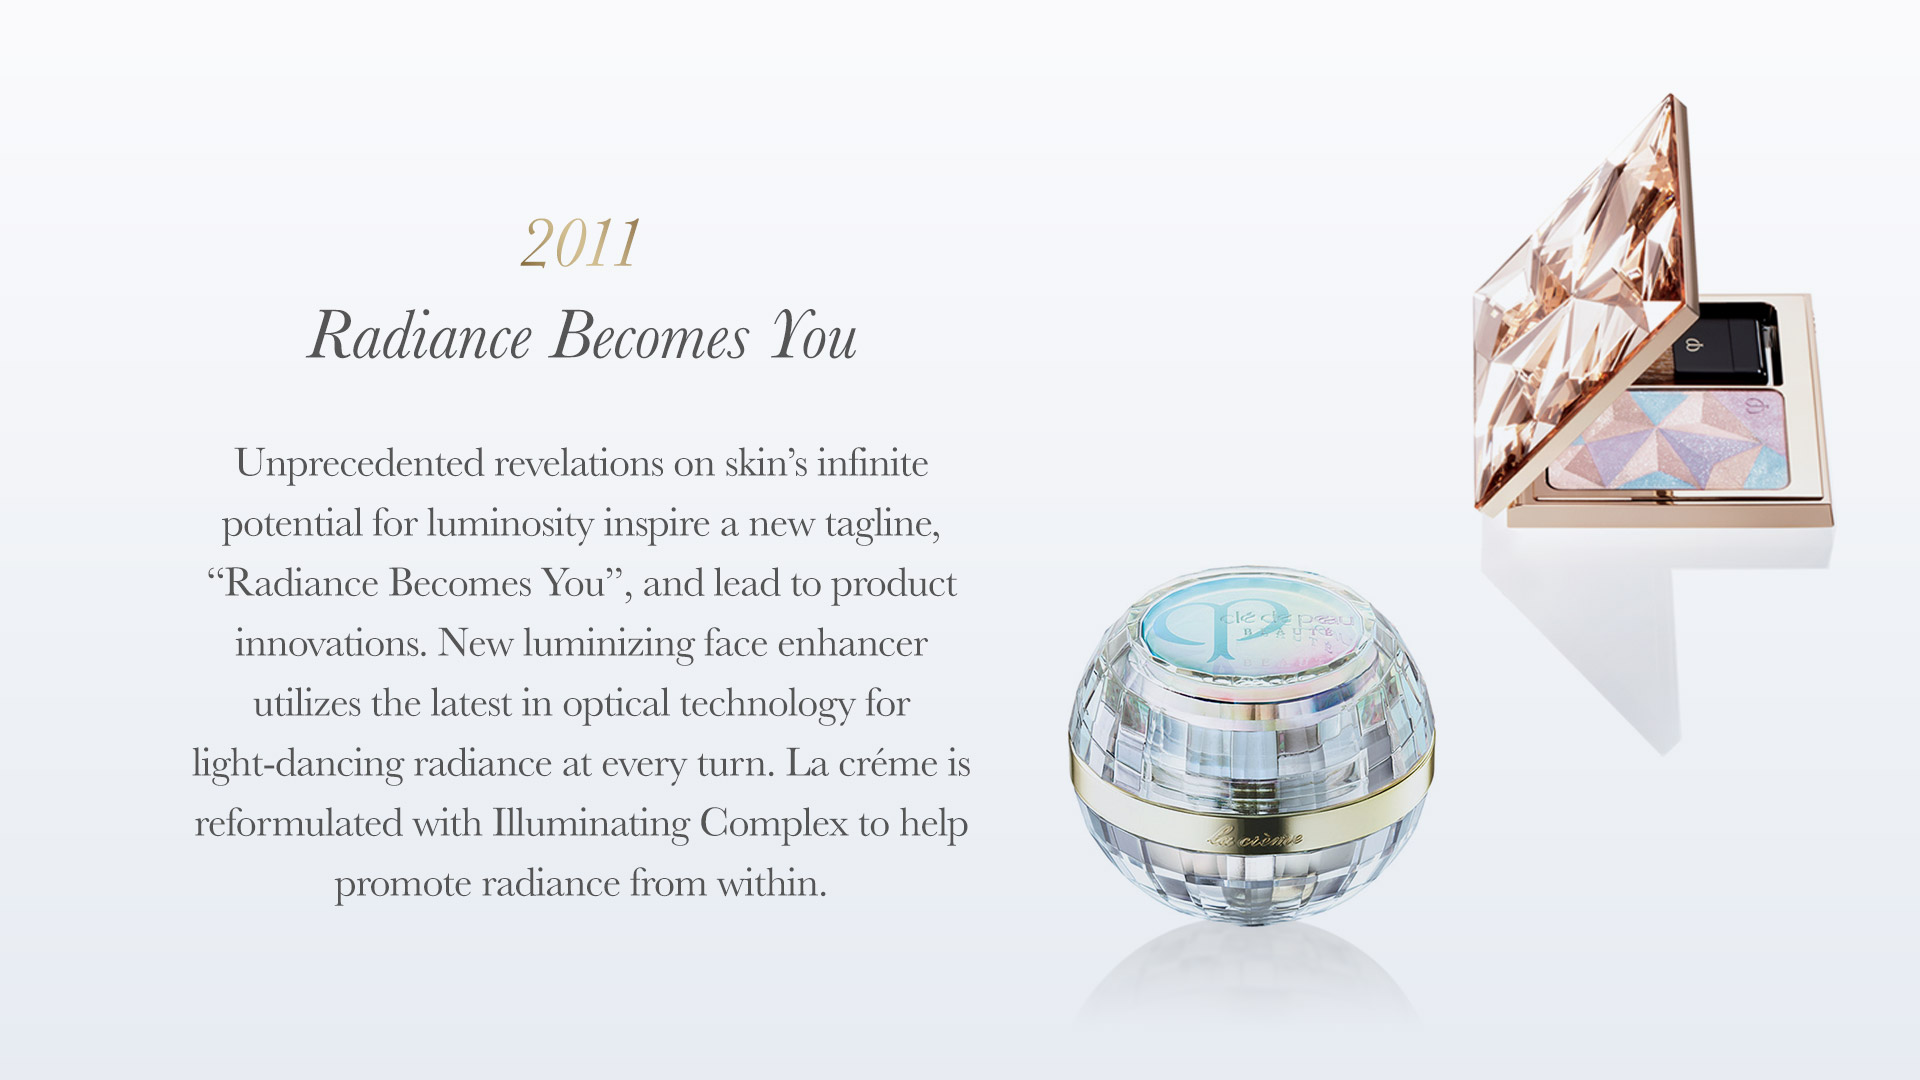 "Unprecedented revelations on skin's infinite potential forluminosity inspire a new tagline, ""radiance becomes you"", and lead to product innovations. New Luminizing Face Enhancer utilizes the latest in optical technology for light-dancingradiance at every turn. la créme is reformulated withIlluminating Complex to help promote radiance from within."